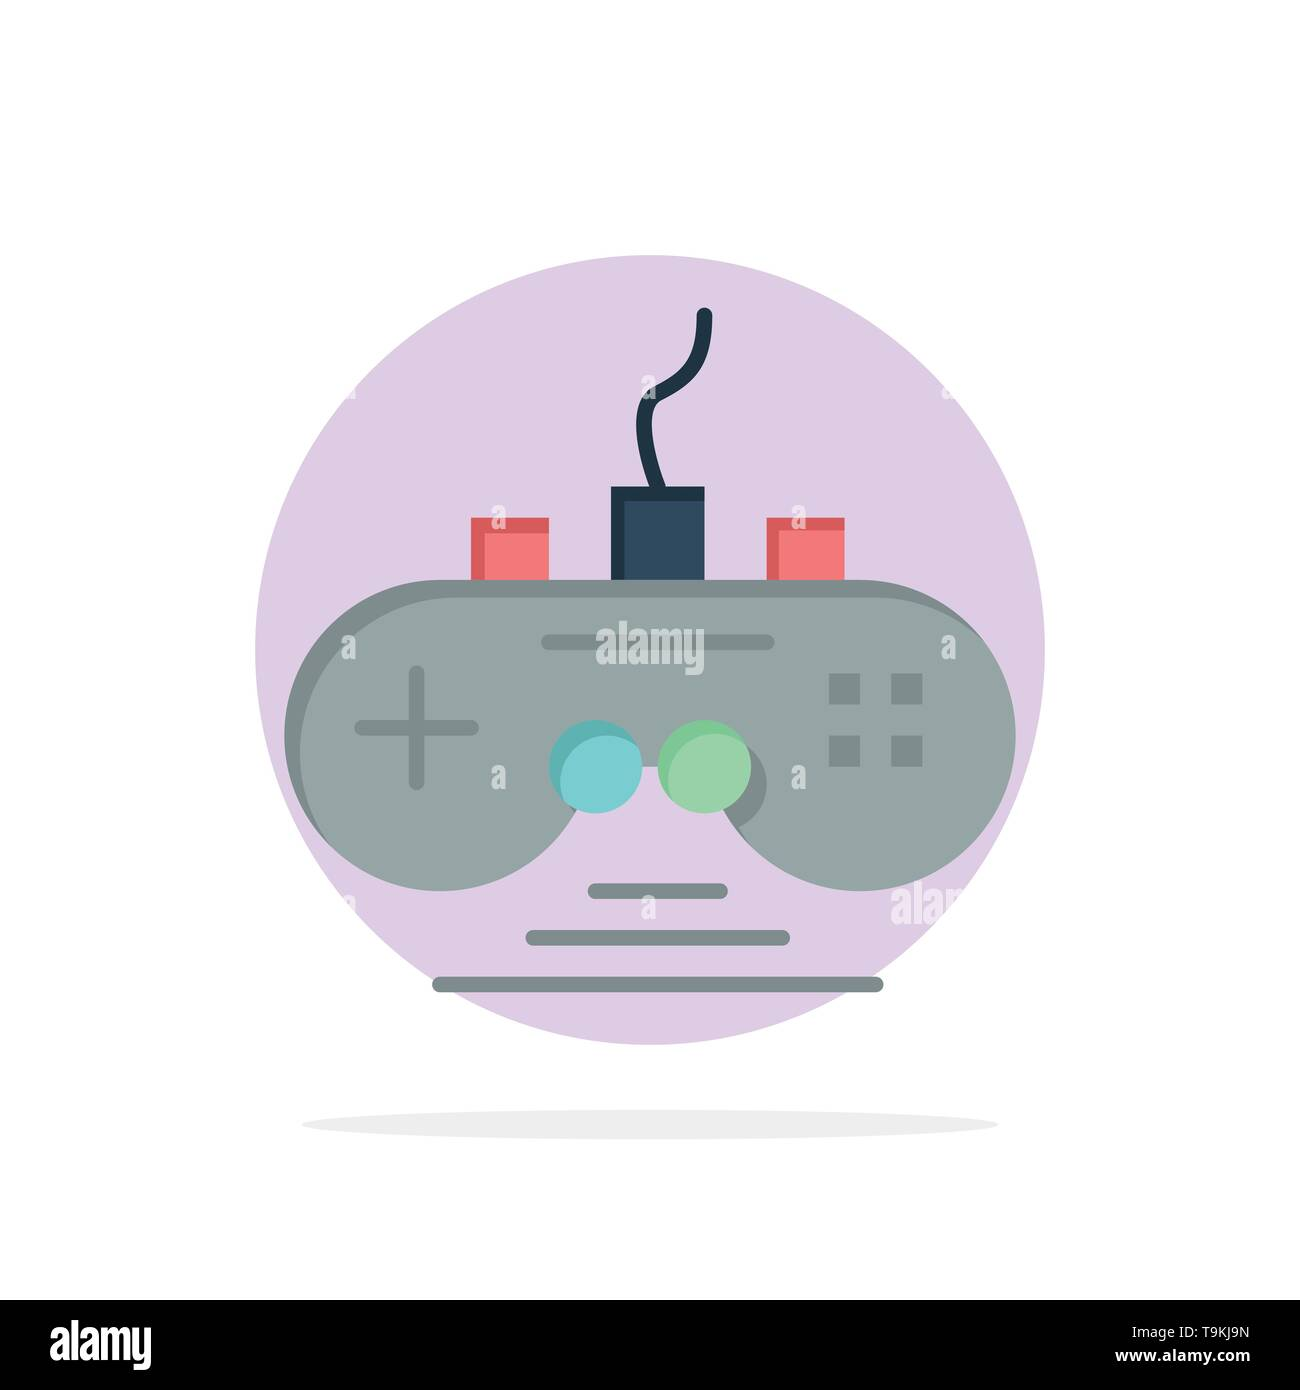 Controller, Game, Game Controller, Gamepad Abstract Circle Background Flat color Icon - Stock Image